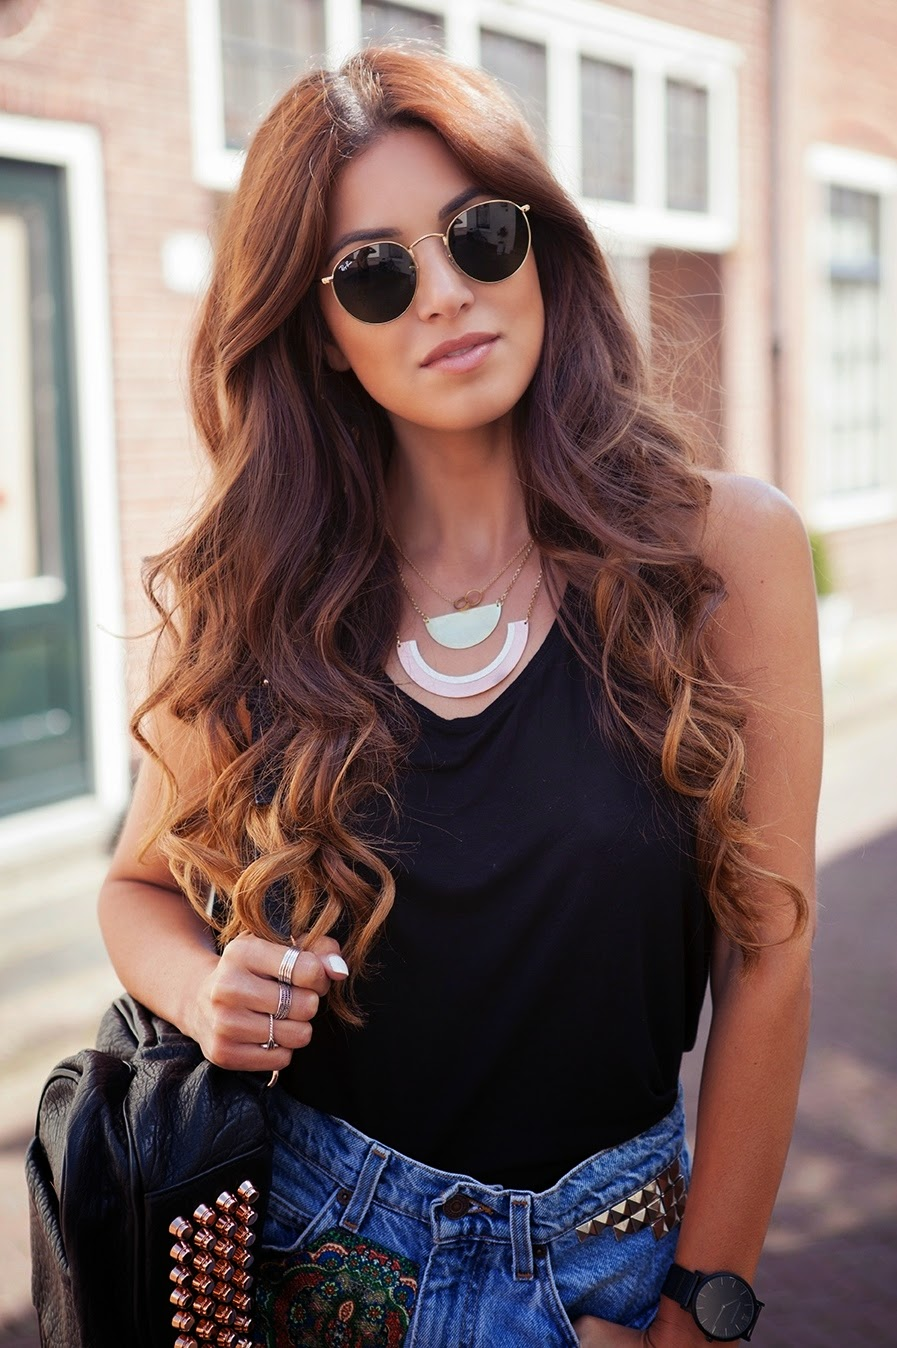 ray ban classic metal round sunglasses  designer spotlight: round ray ban sunglasses